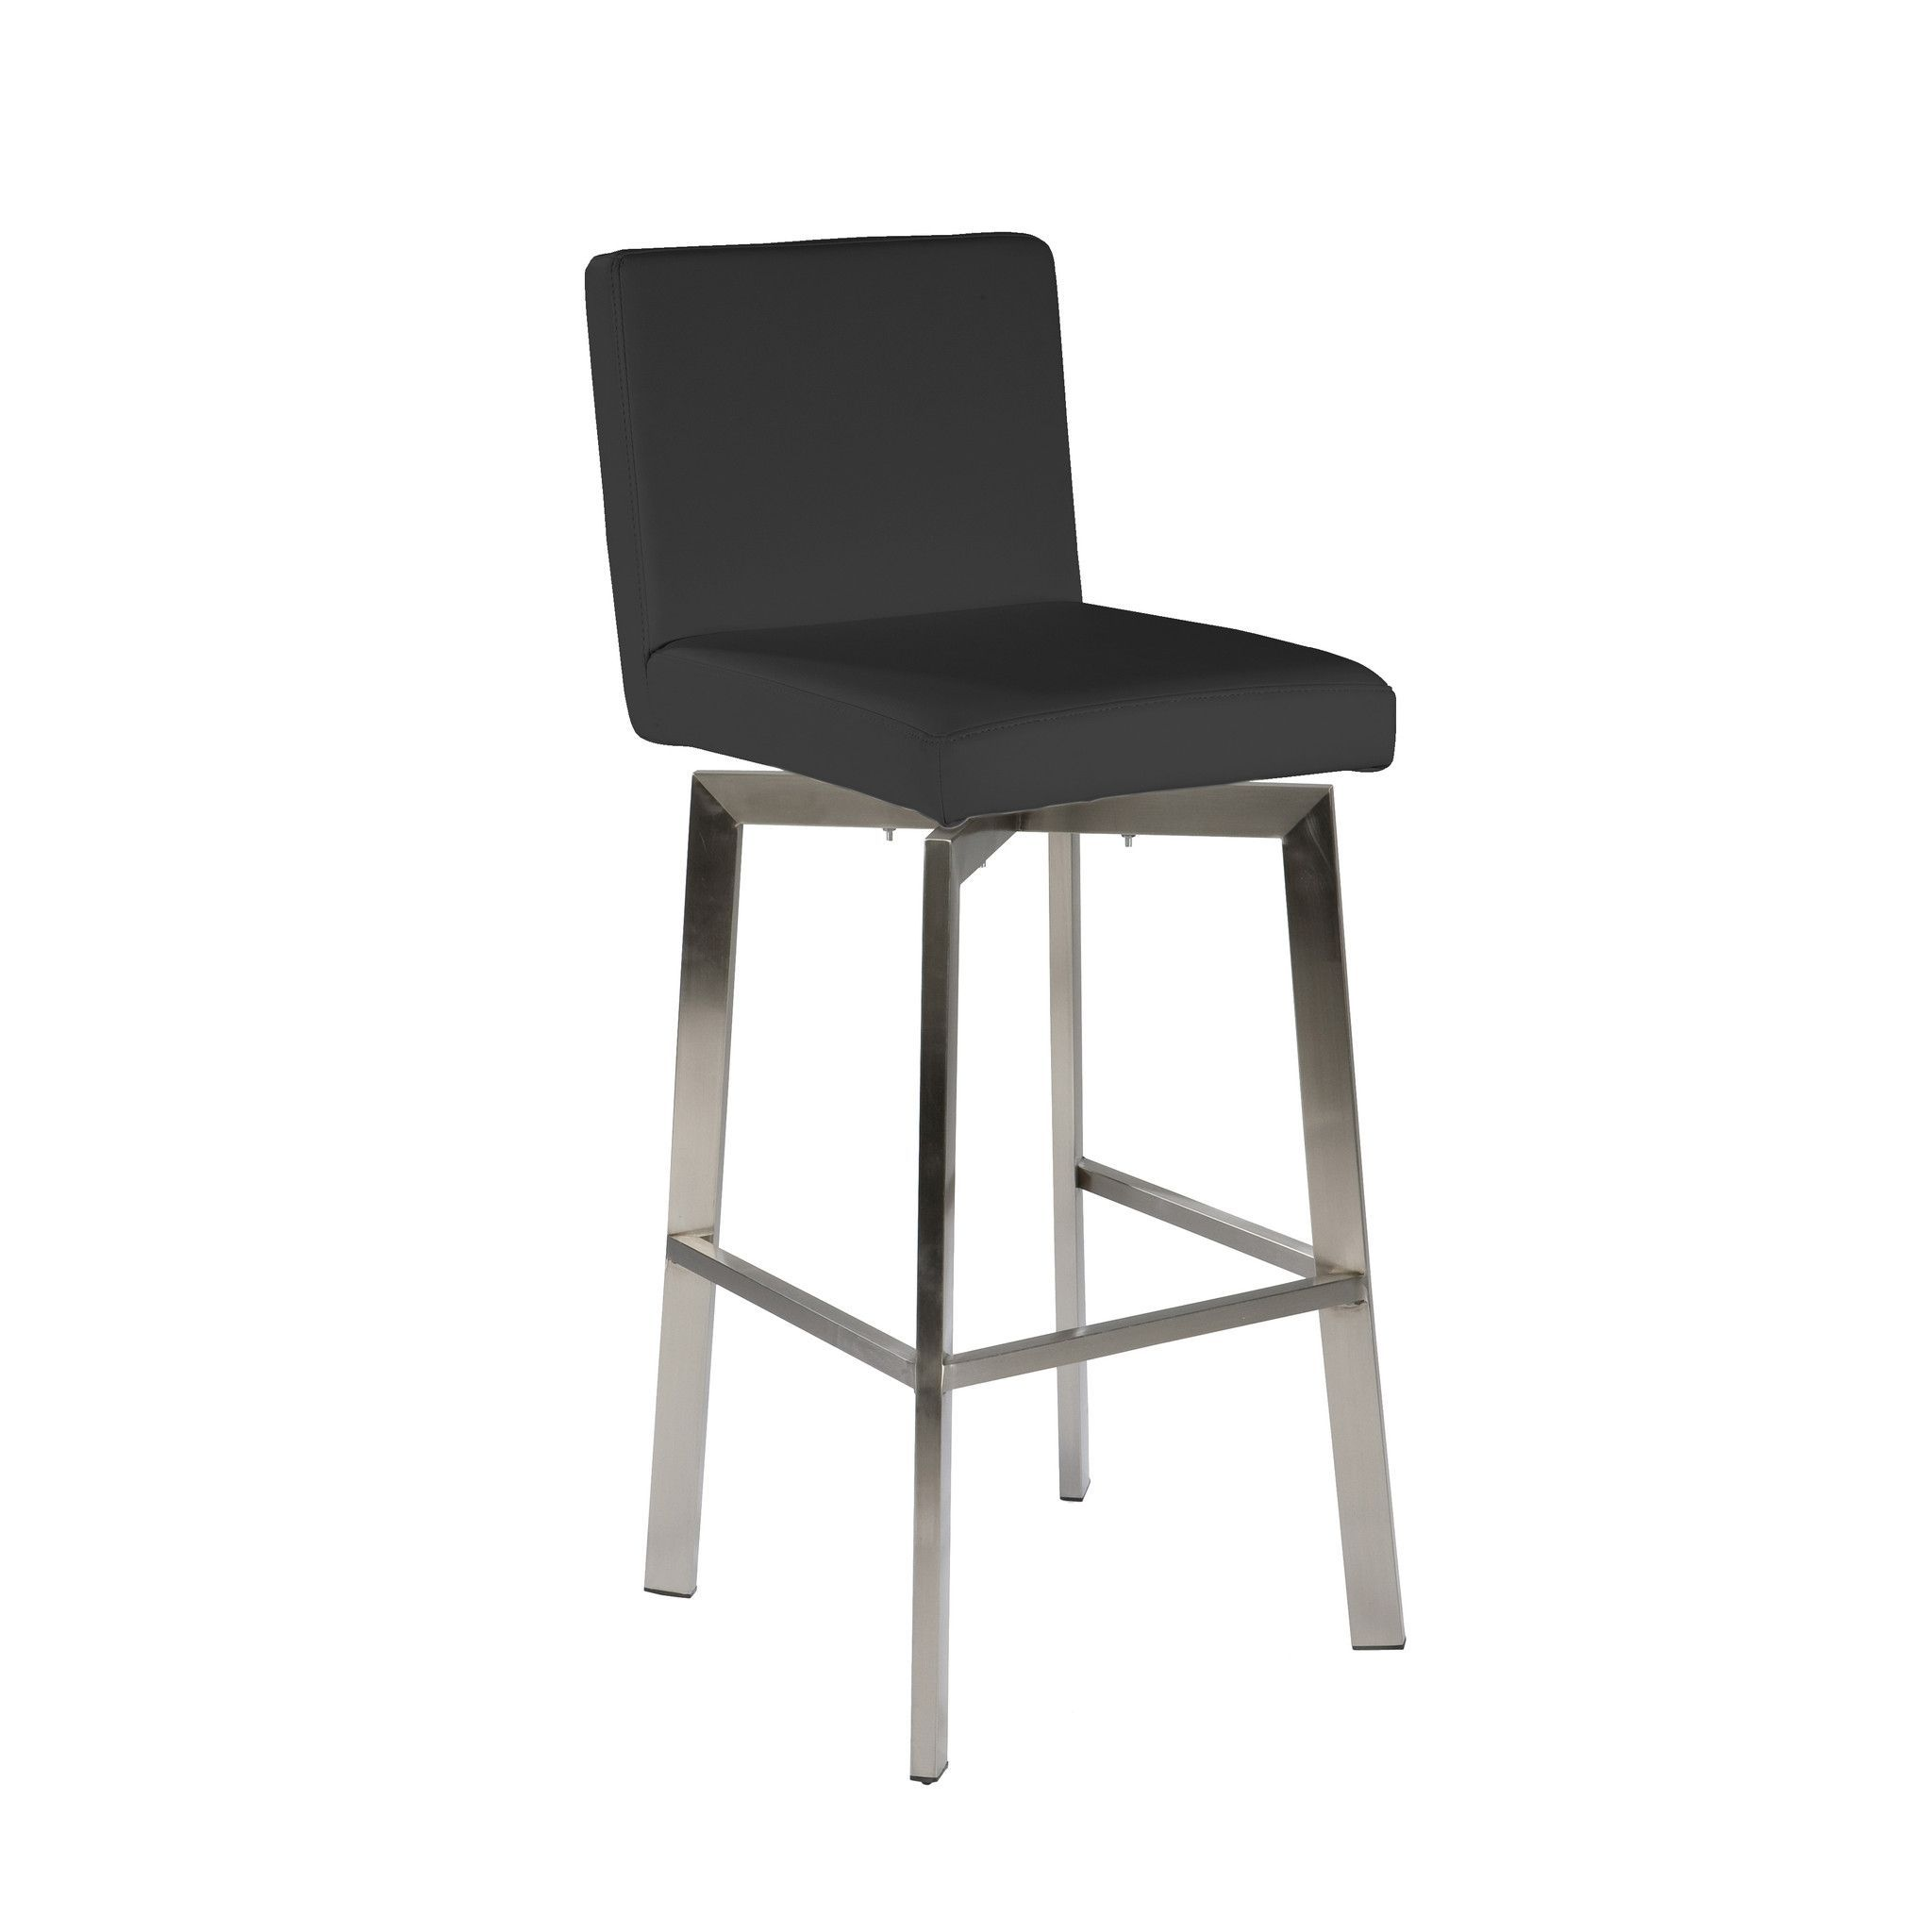 grey steel kitchen r black stool frame counter leather with bronze bar stools